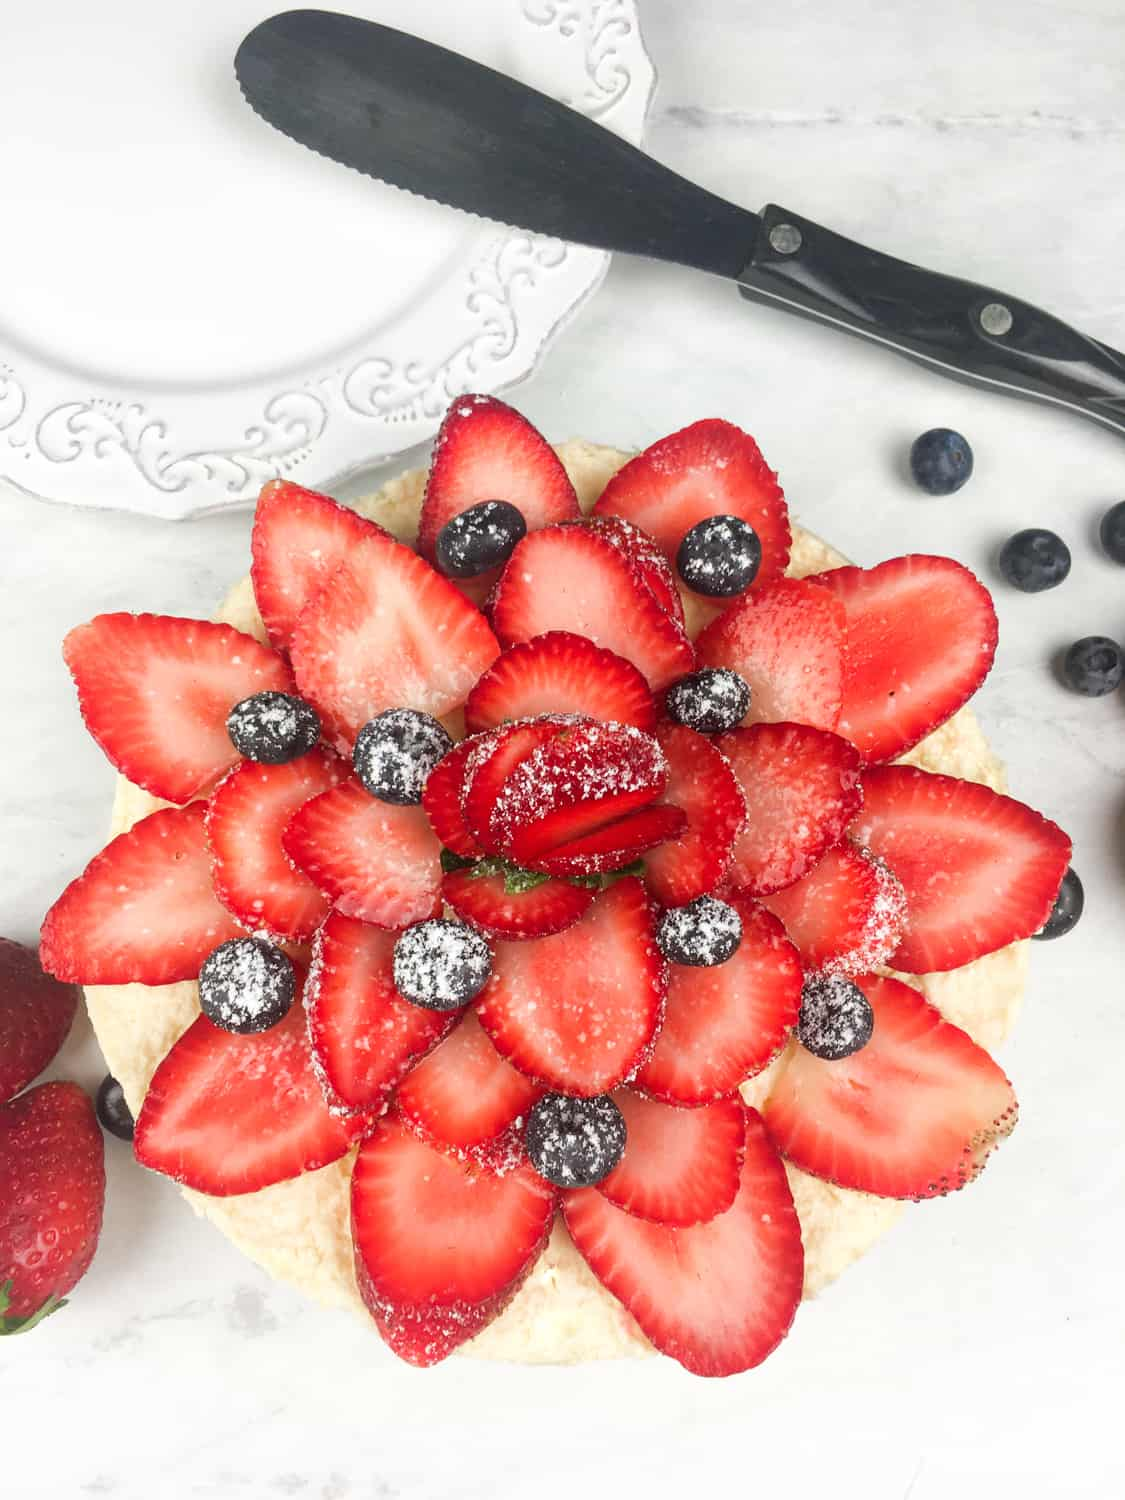 strawberries and blueberries decorating a cake, arranged in a flower shape